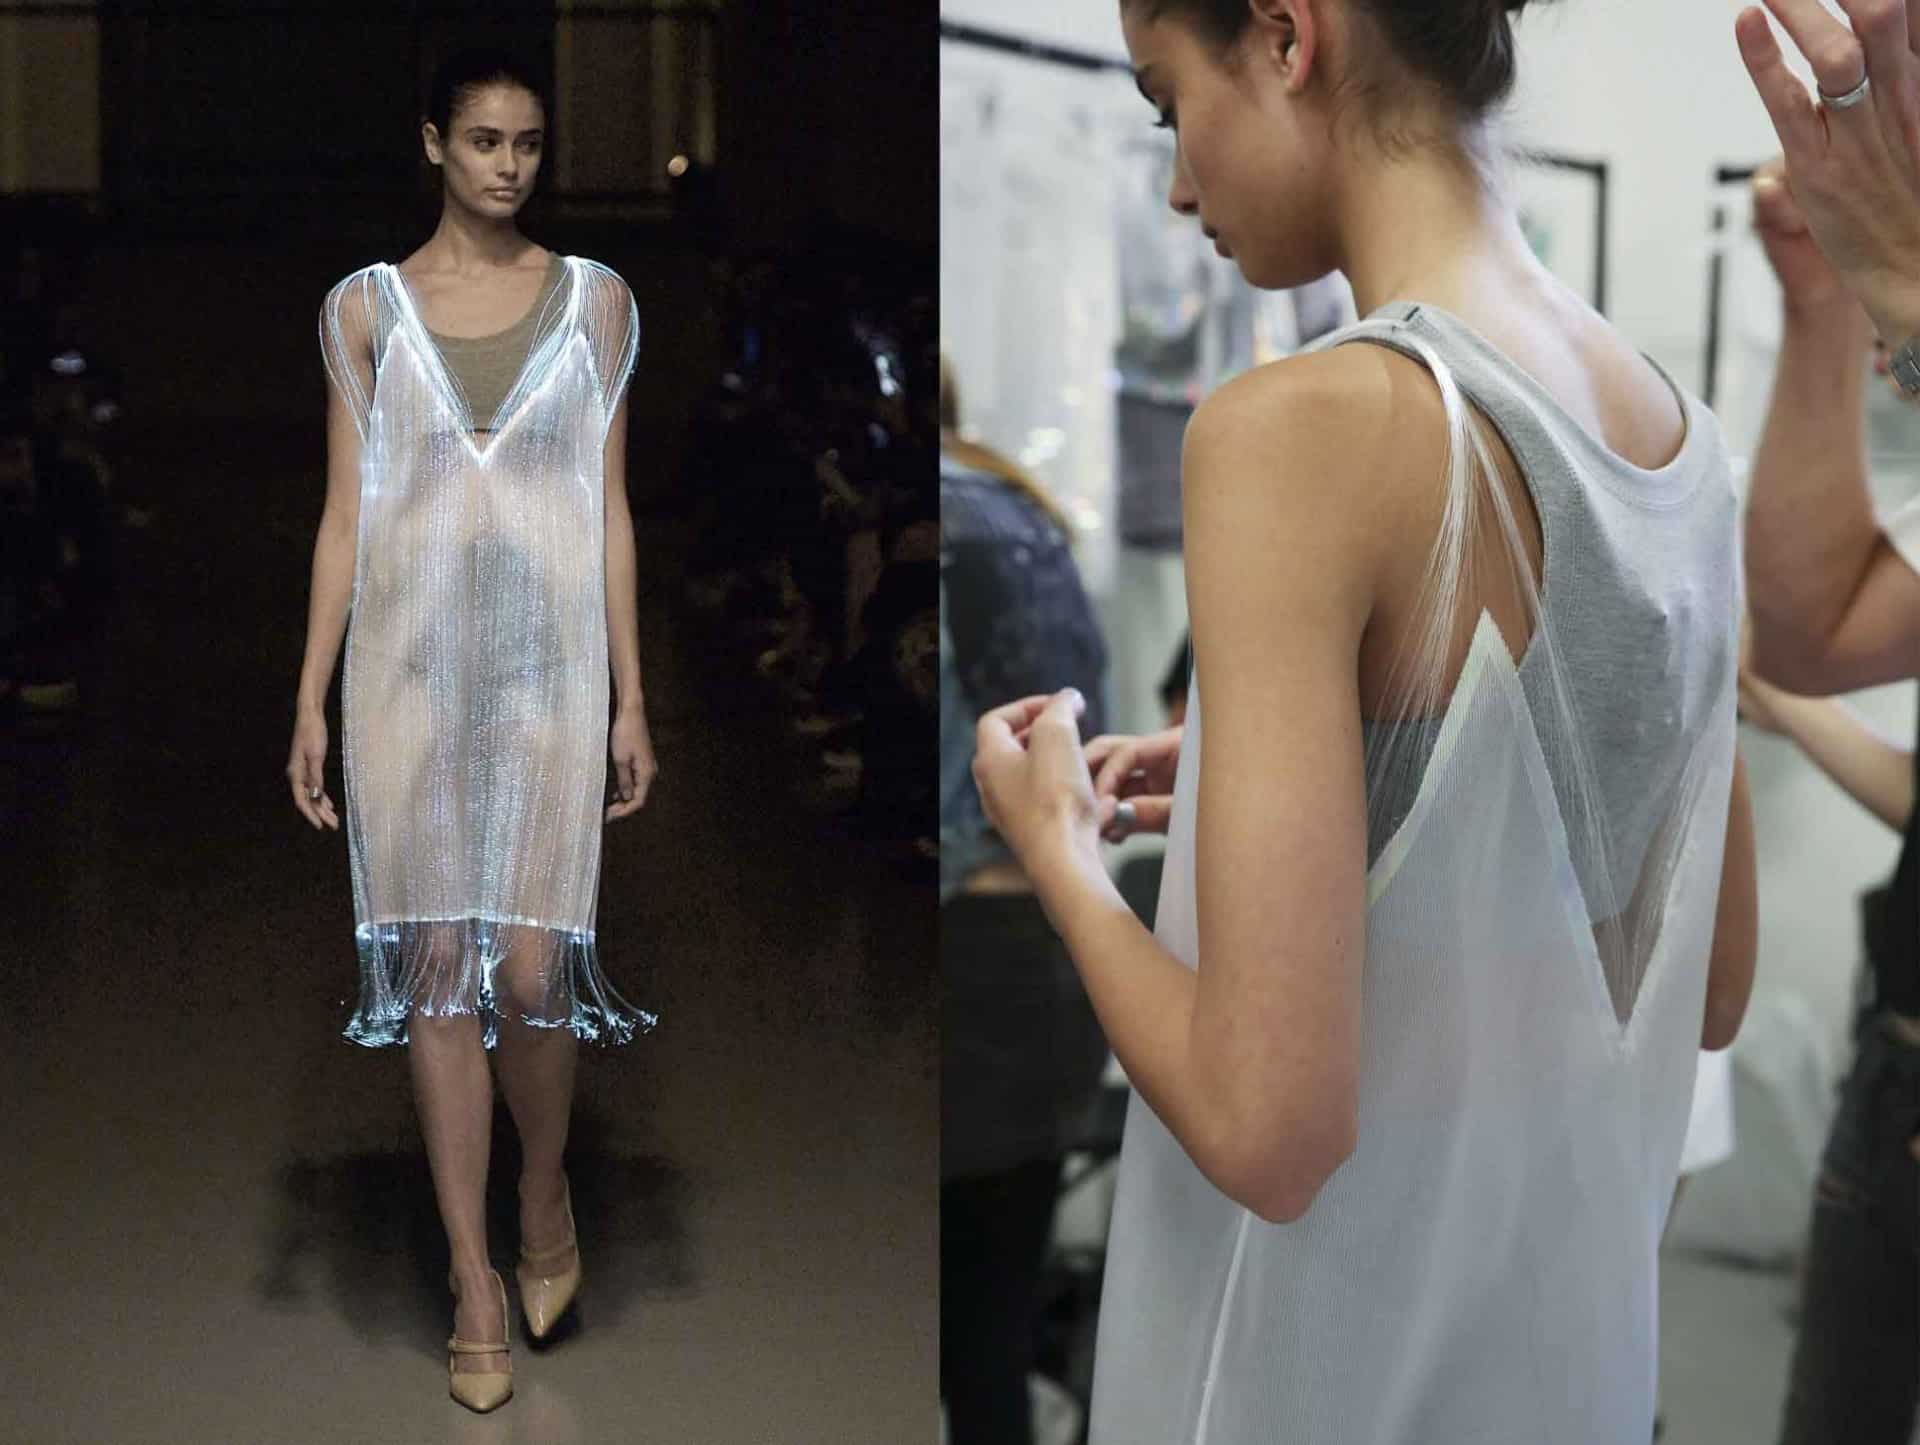 Richard Nicoll's spring/summer 2015 optic dress on the catwalk and backstage at London Fashion